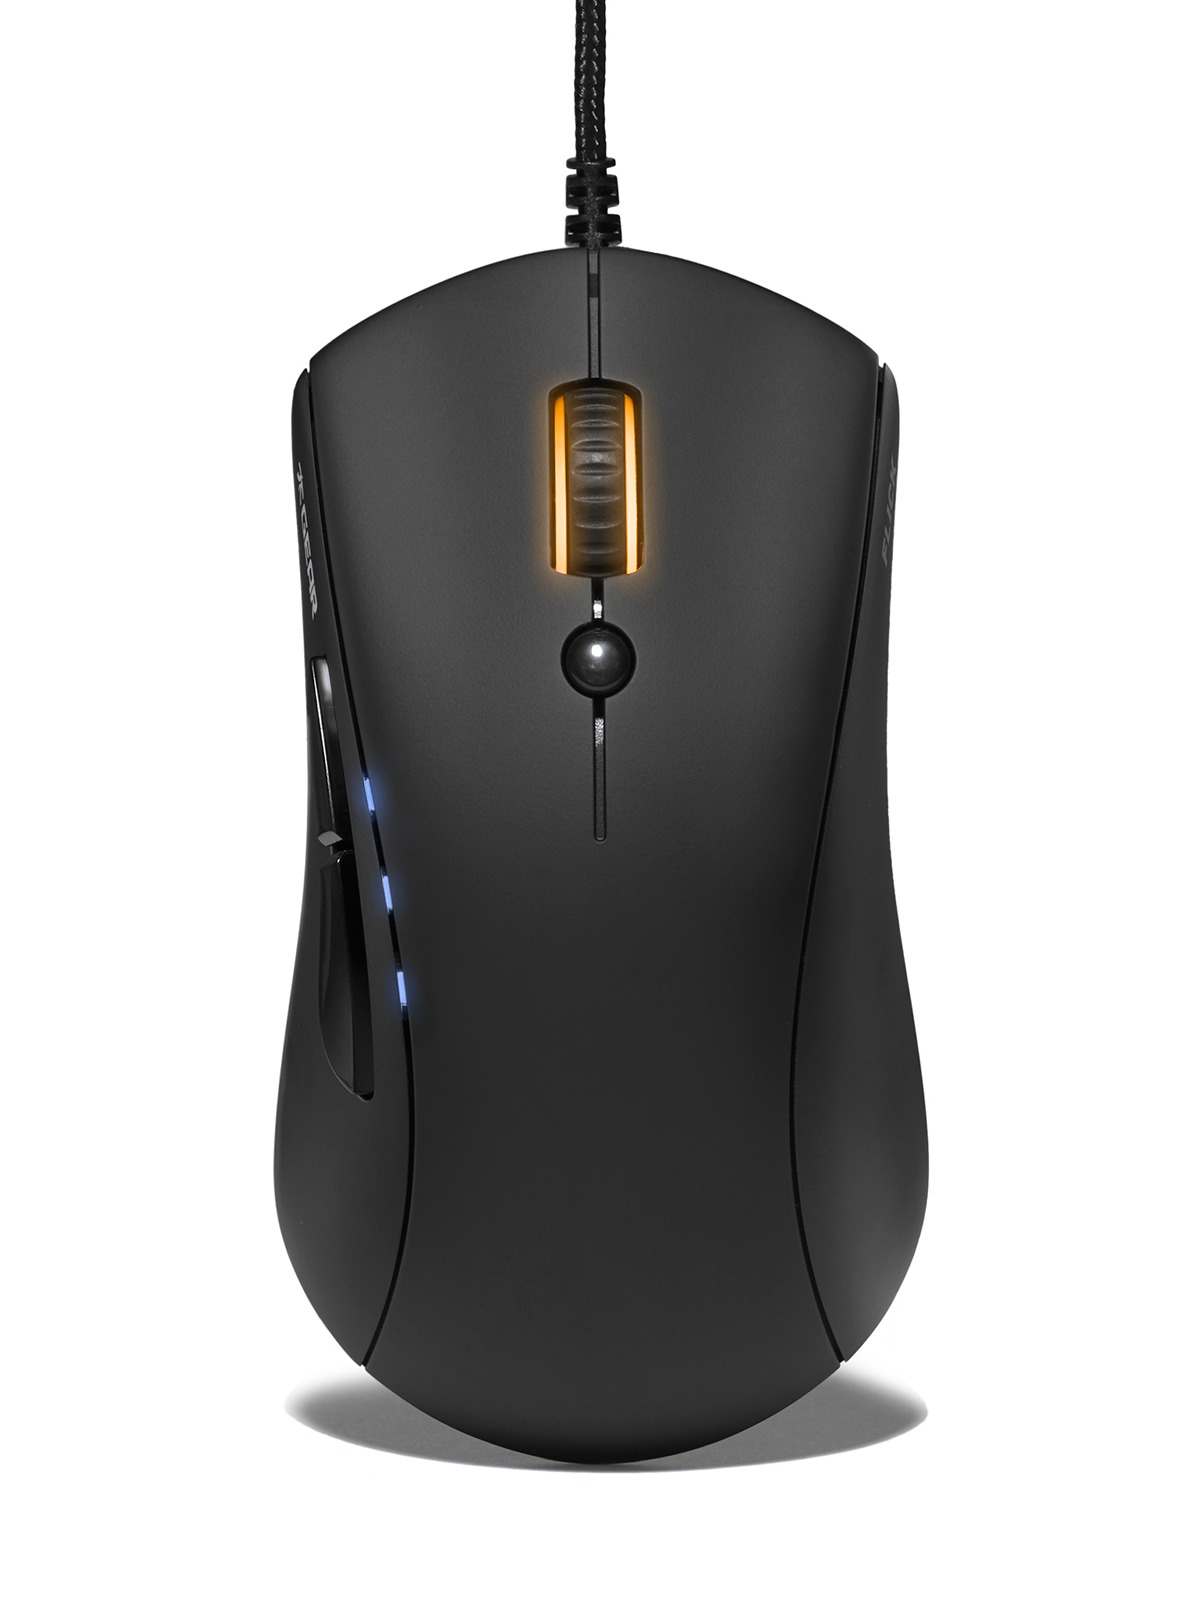 Fnatic Flick Gaming Mouse screenshot